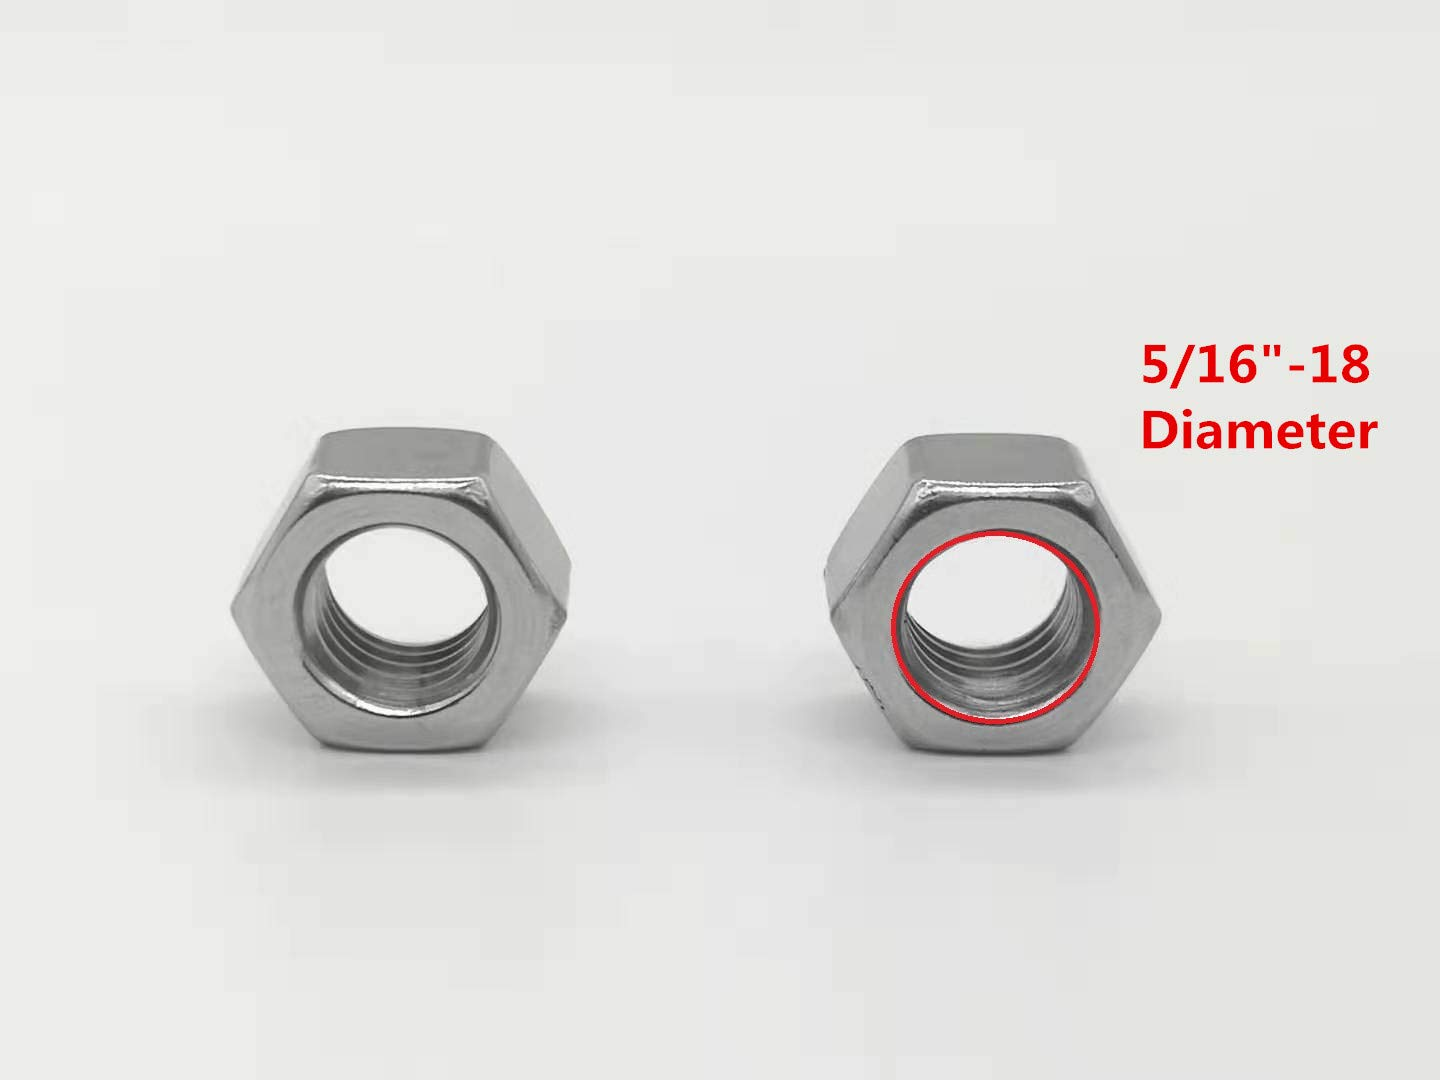 Sweetfamily 3//8-16 Stainless Hex Nut,304 Stainless Steel Nuts for Home Improvement and Industrial Accessories(50 Pack)